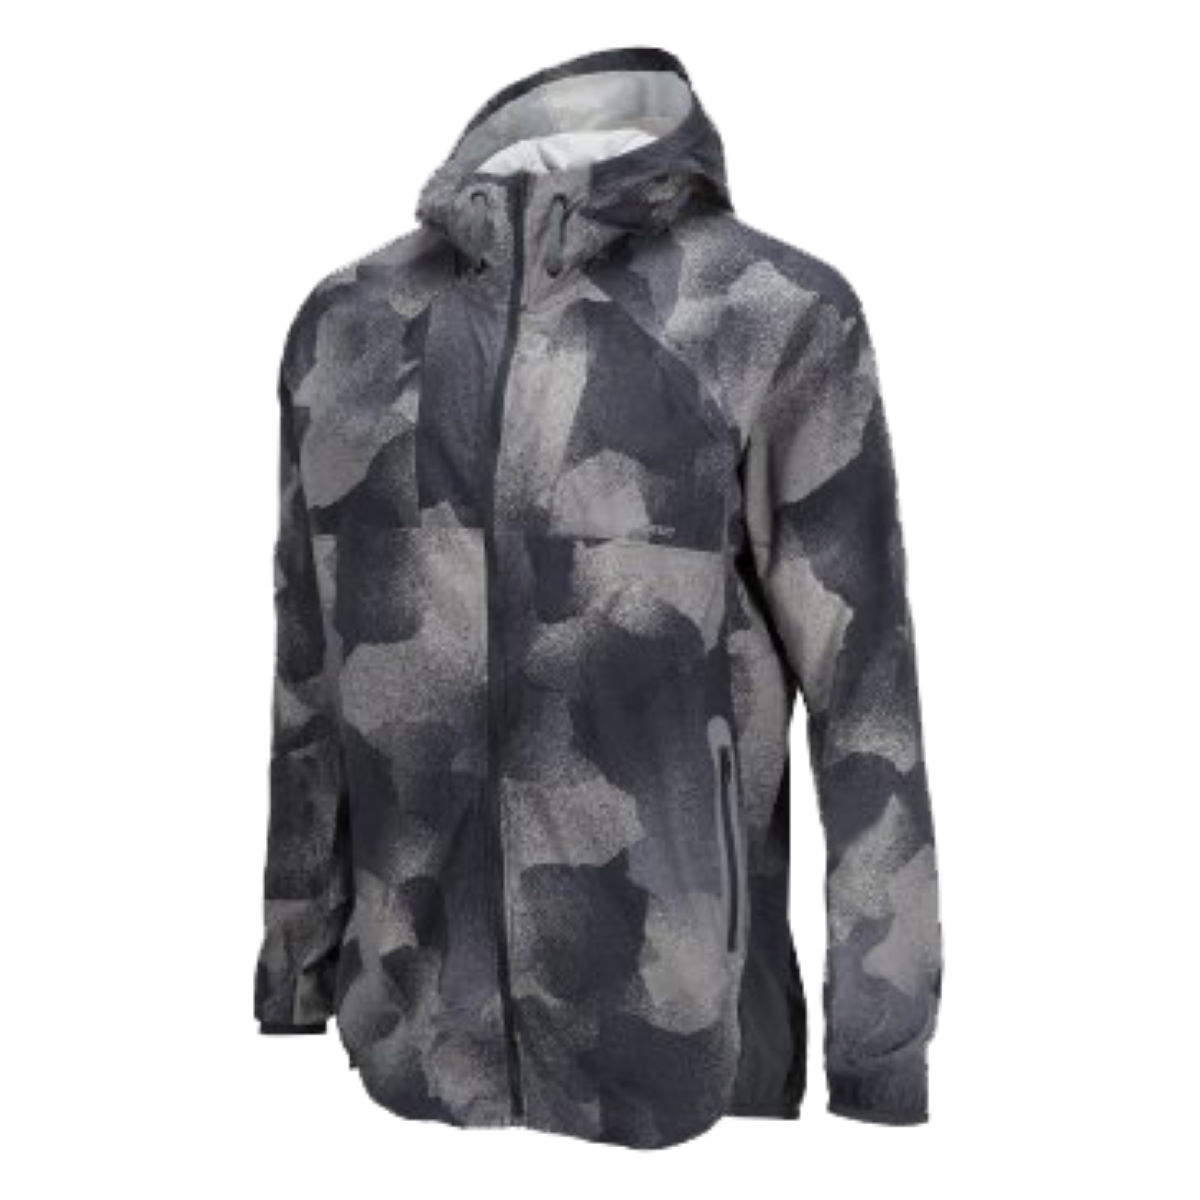 Veste Peak Performance - West 4th Street (imprimée) - XL Black Print